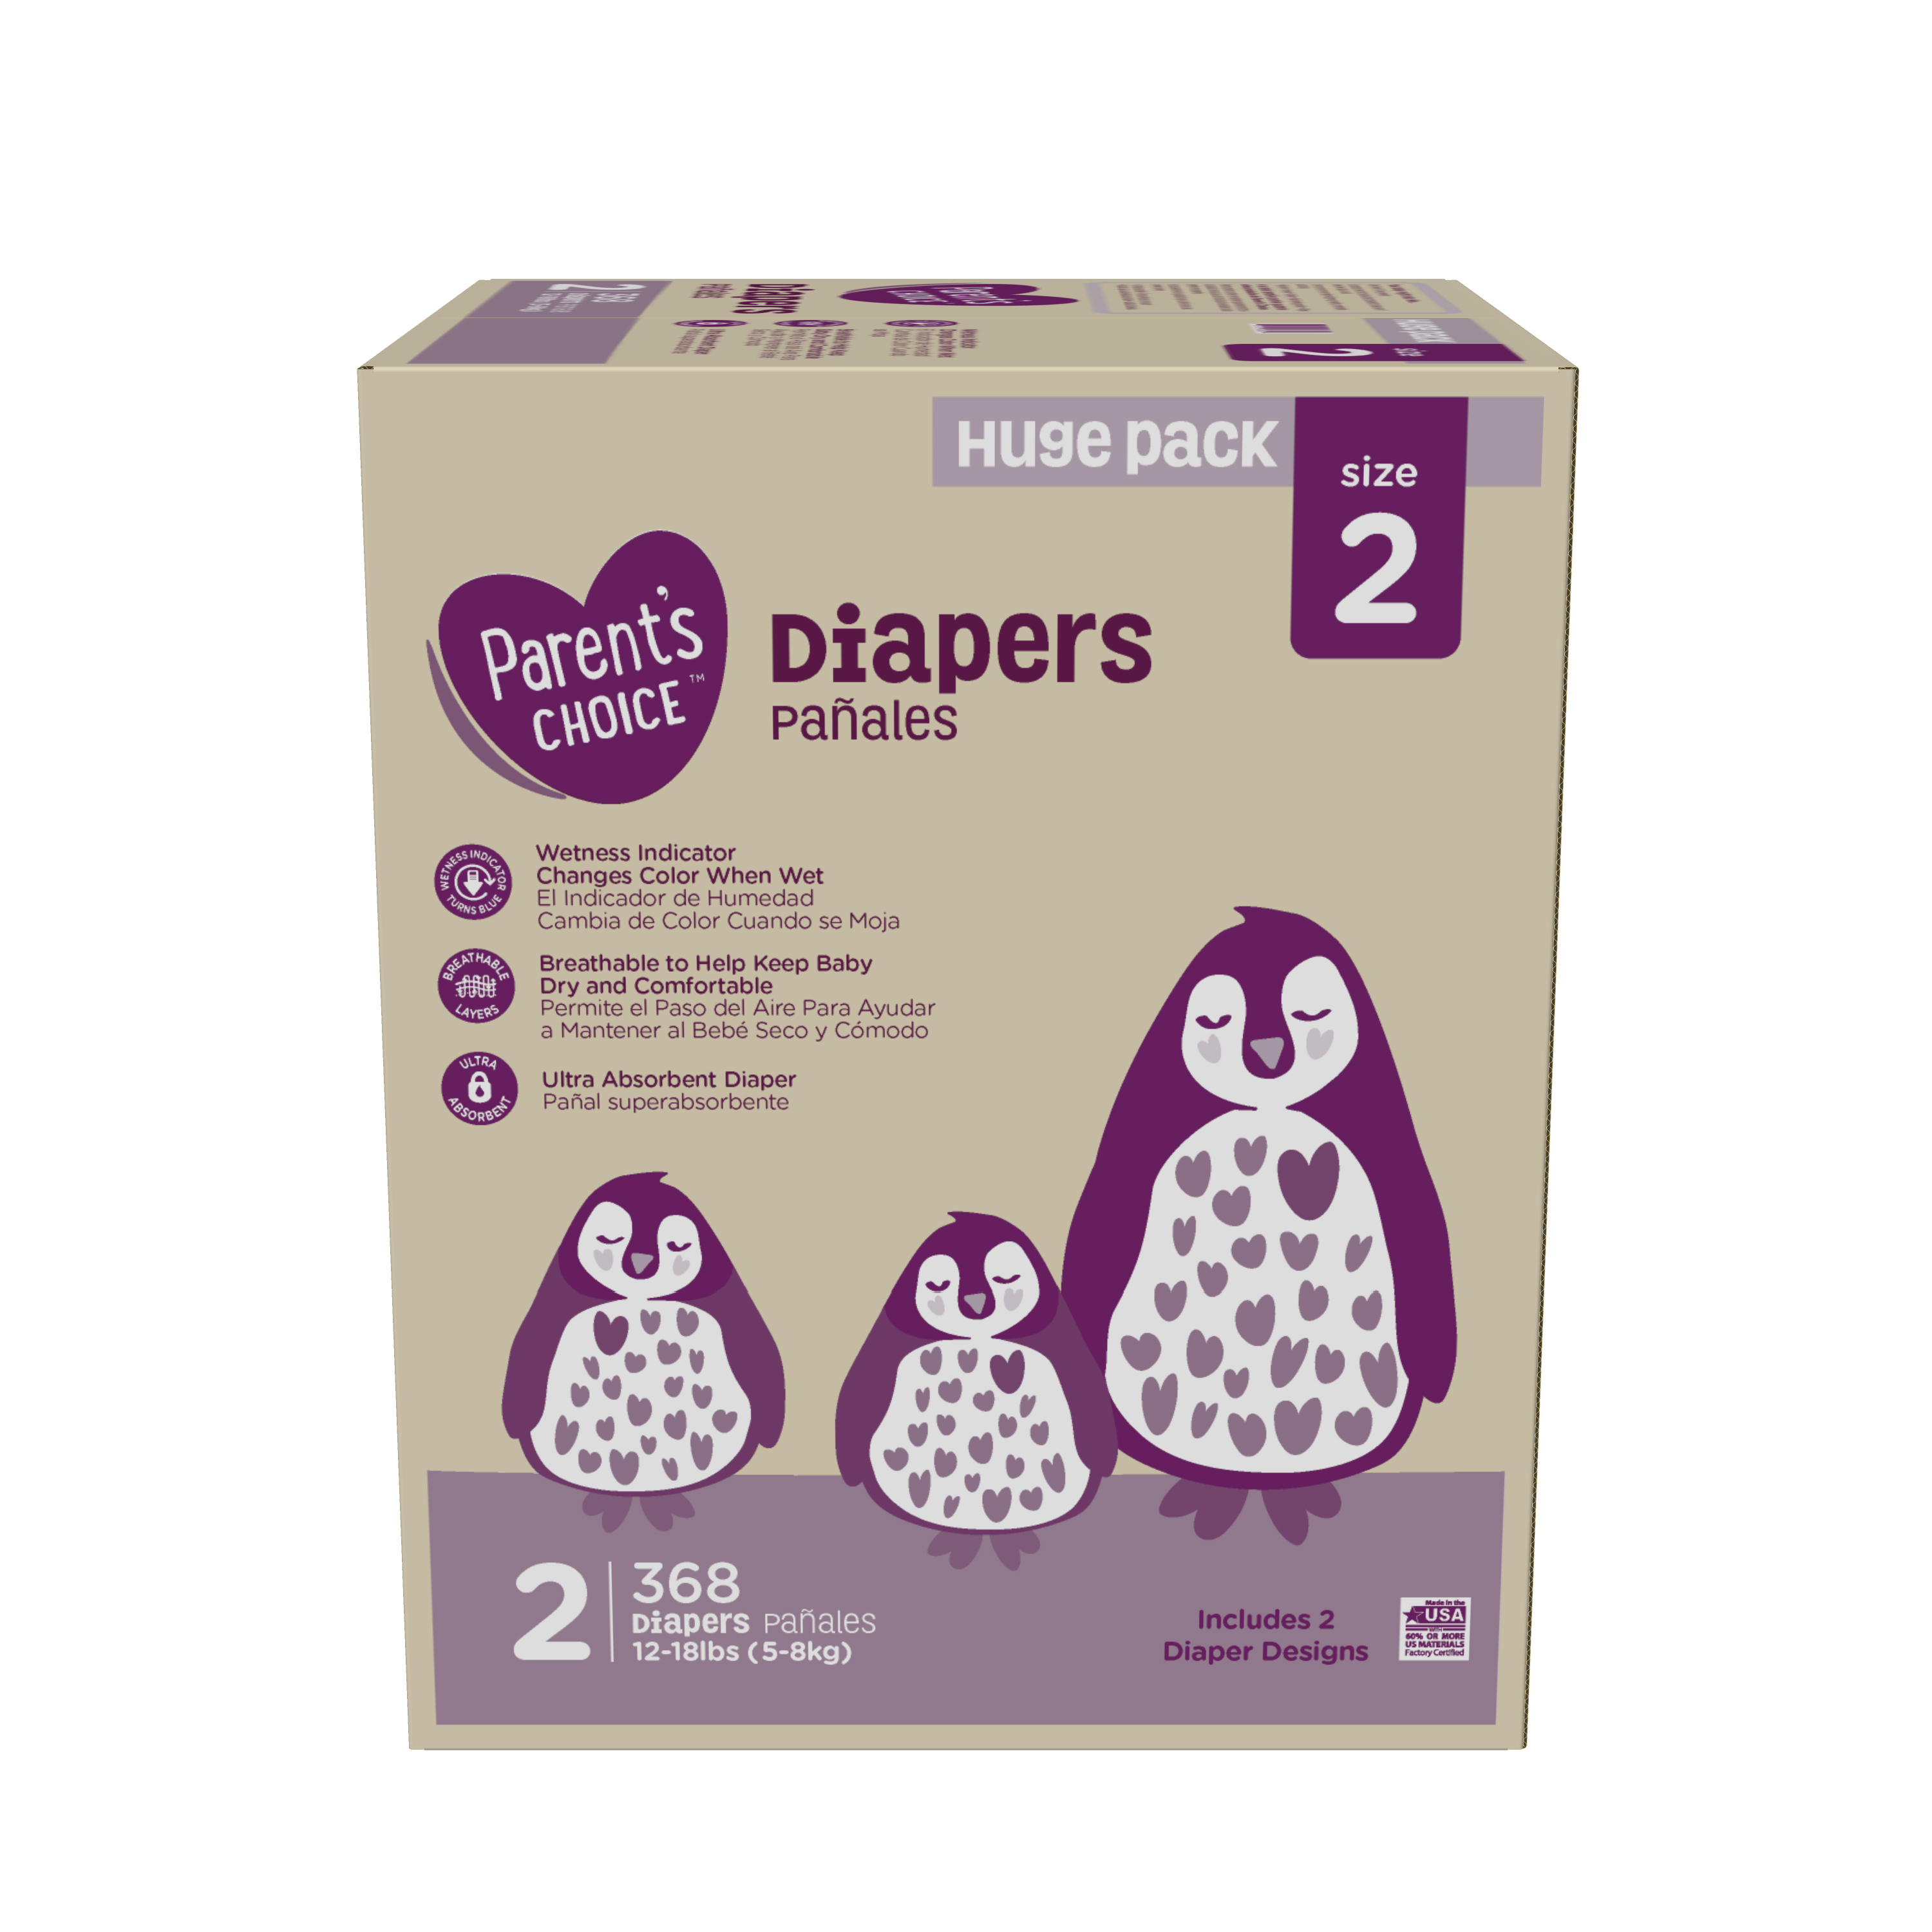 bba650281ae Parent's Choice Diapers, Size 2, 368 Diapers (Mega Box) - Walmart.com